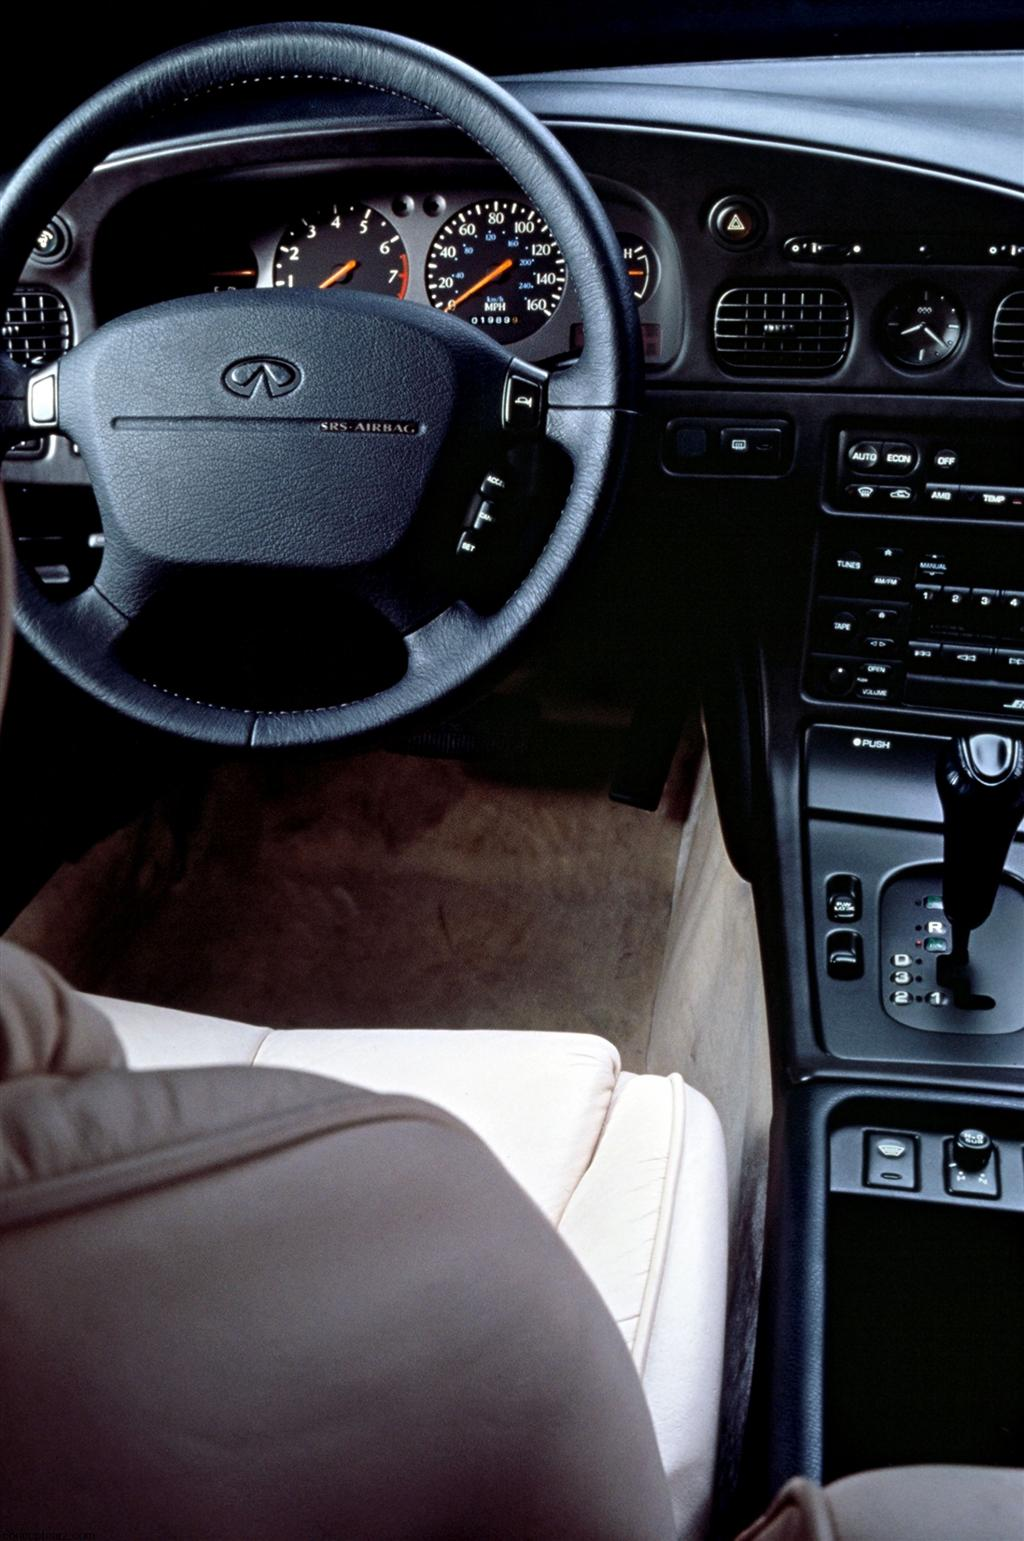 Note the images shown are representations of the 1990 infiniti q45